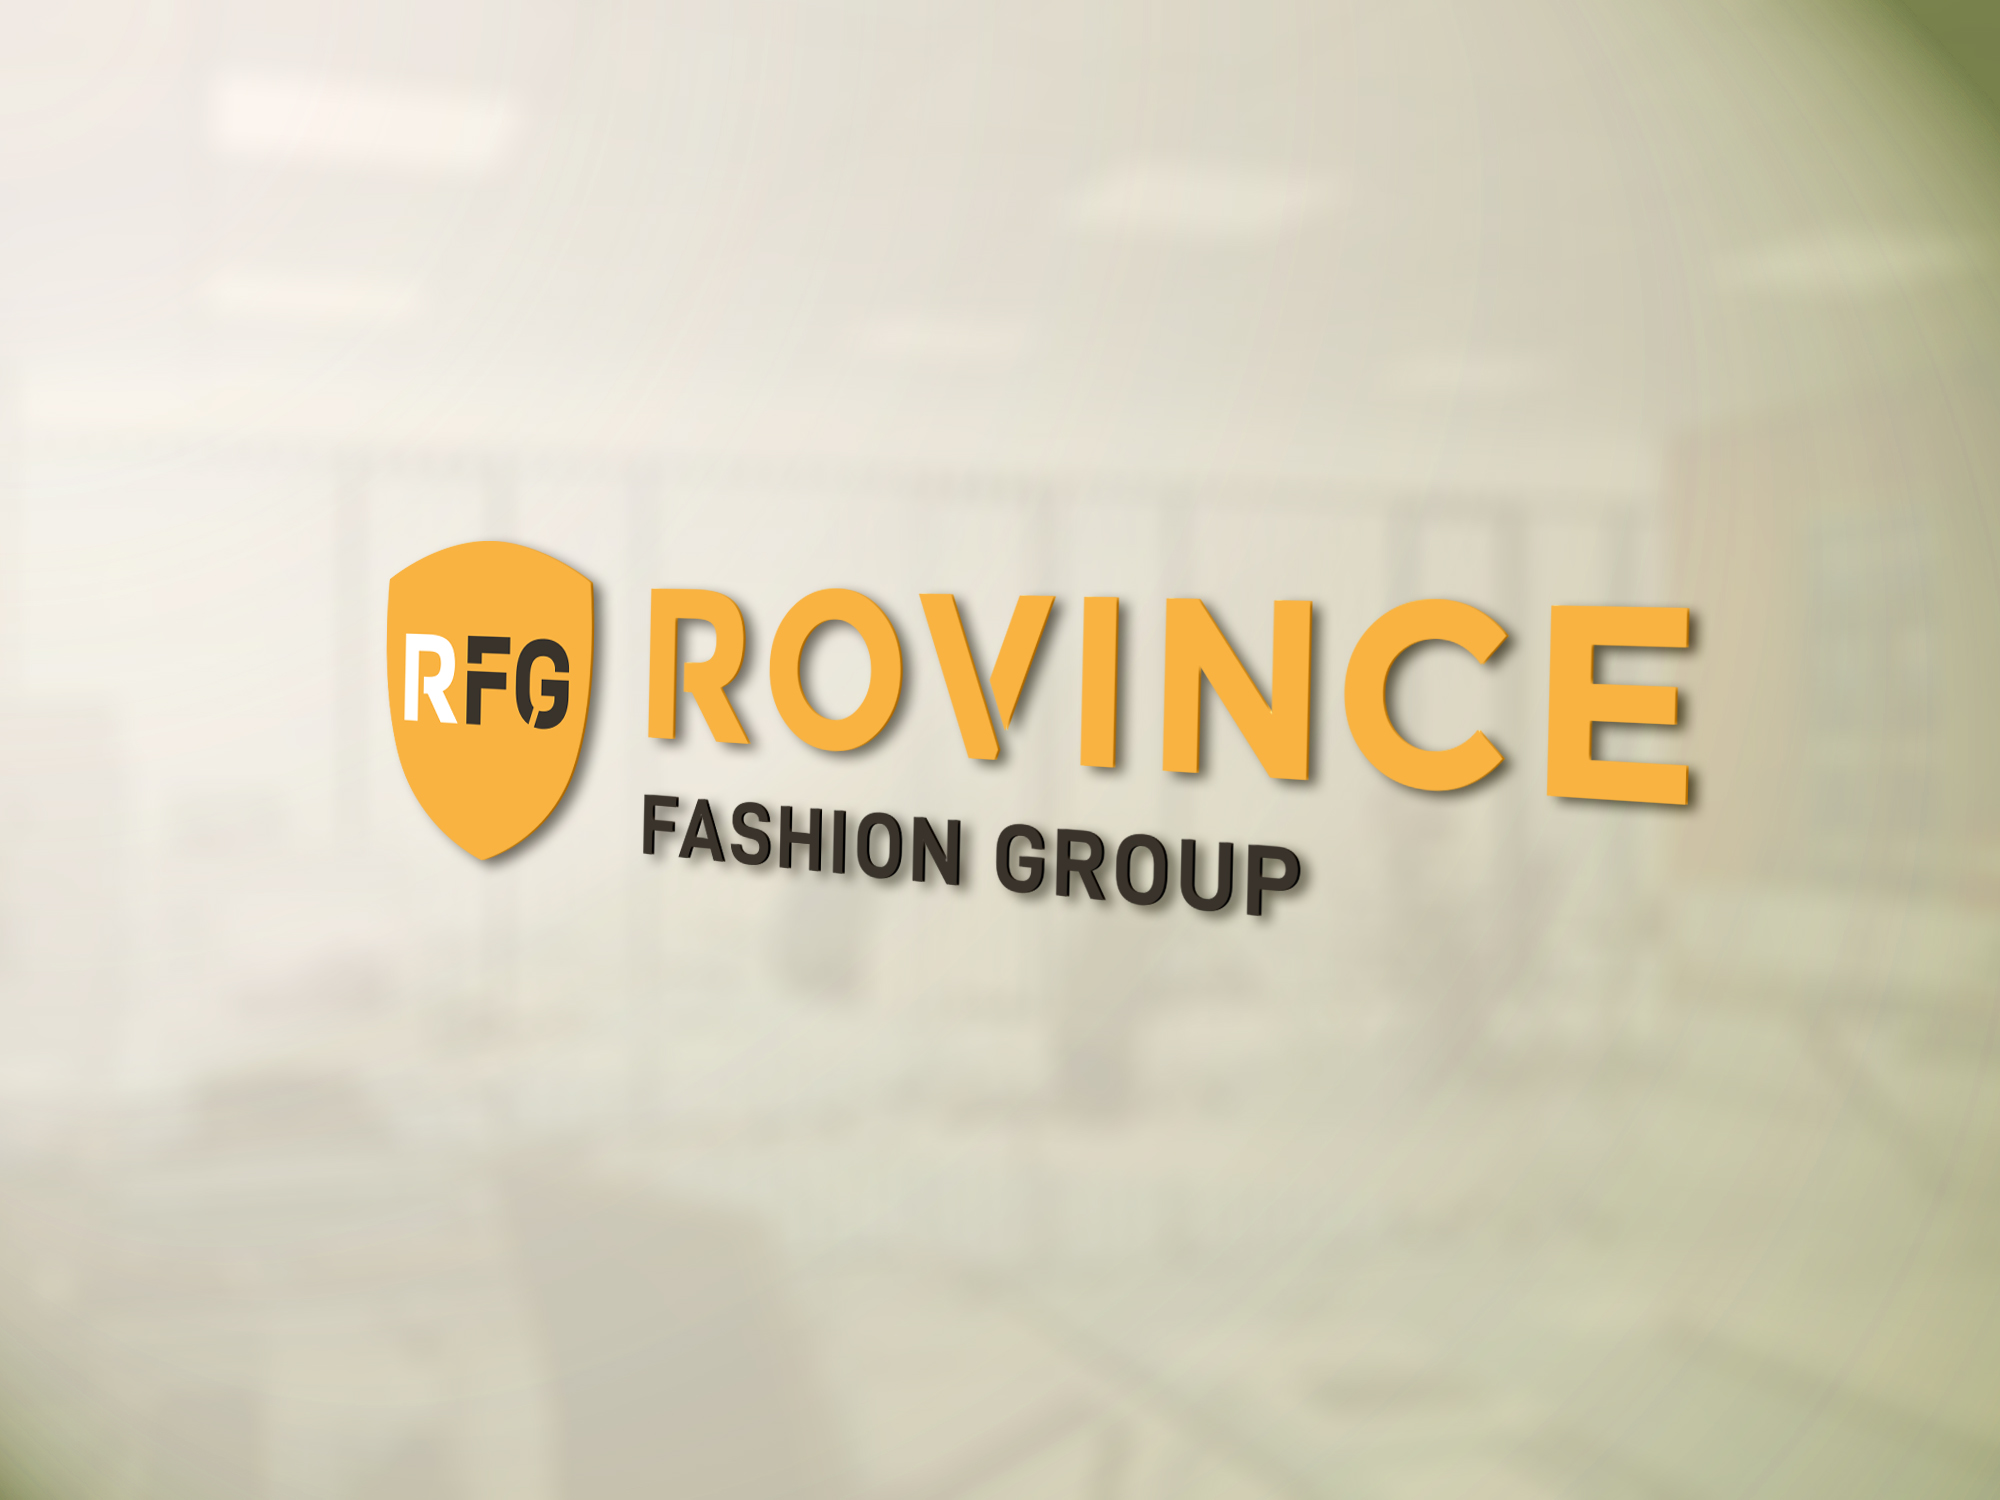 Fashion Group logo